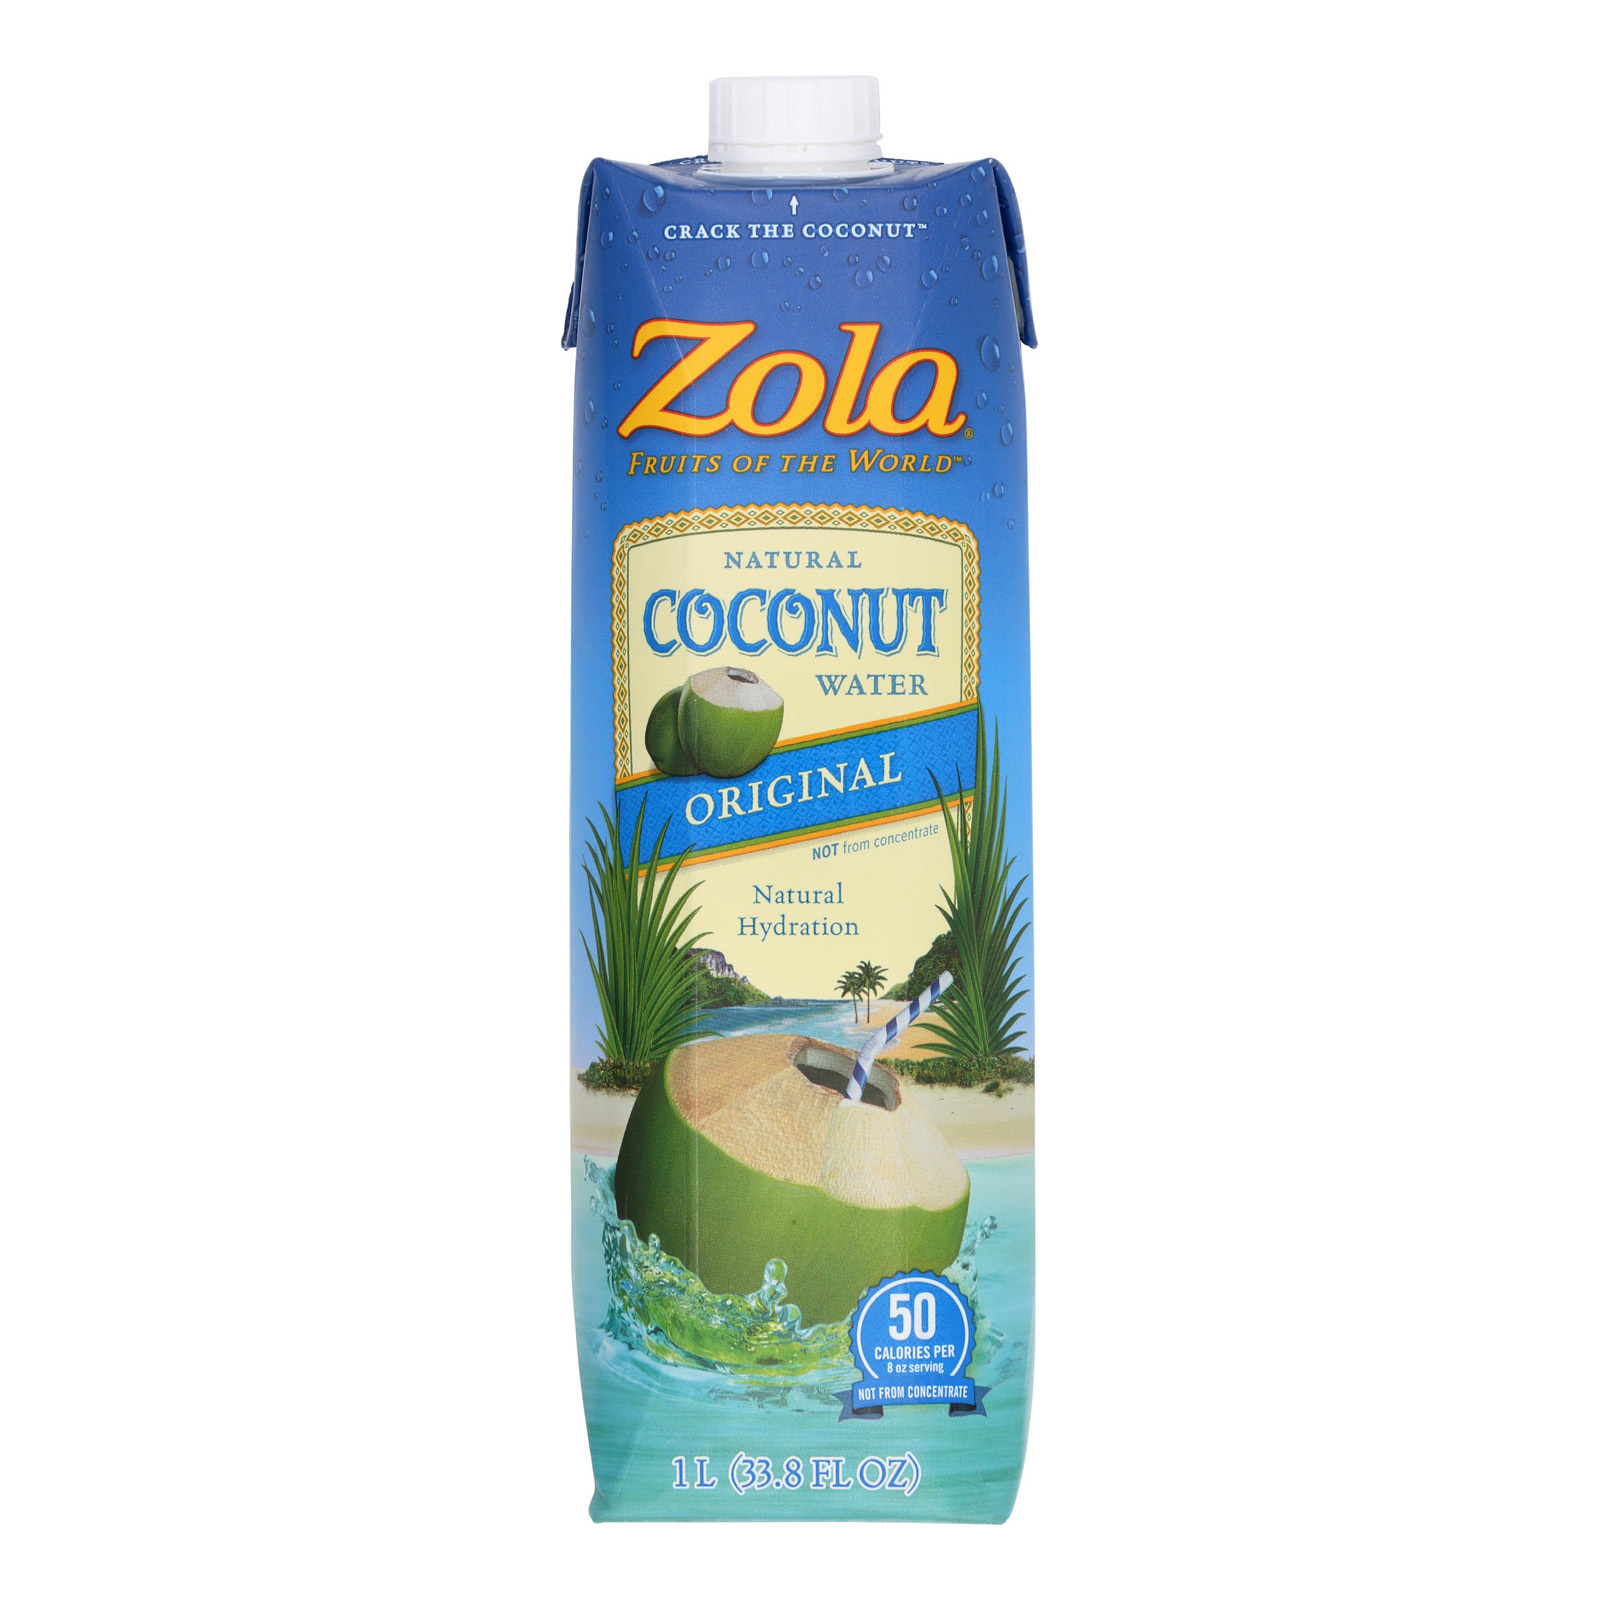 Zola Acai Coconut Water - Natural - Case of 12 - 33.8 Fl oz.